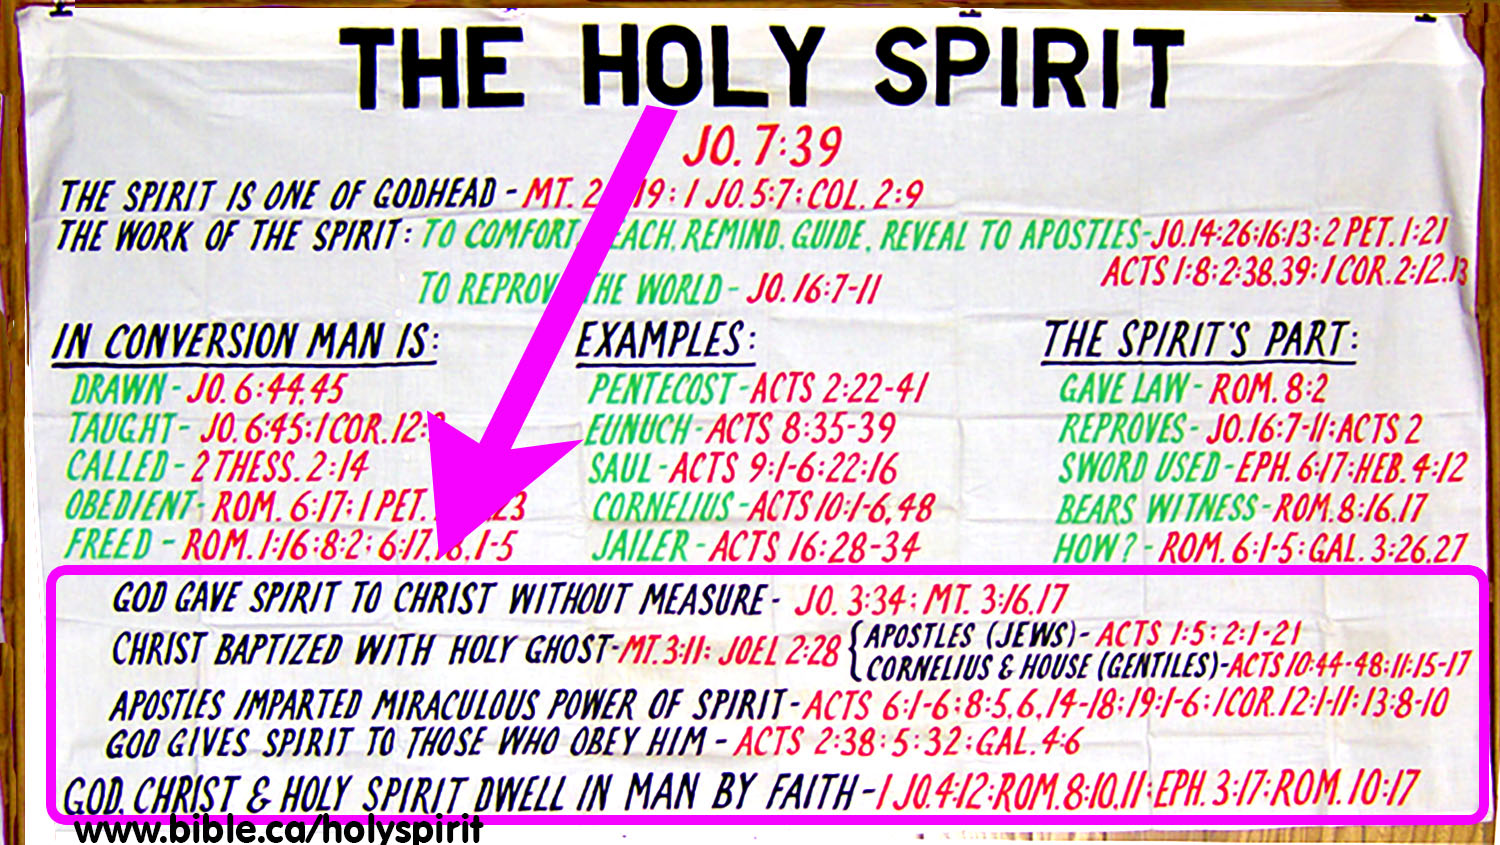 Joel 2:28, Promise of the Father, Baptism of the Holy Spirit